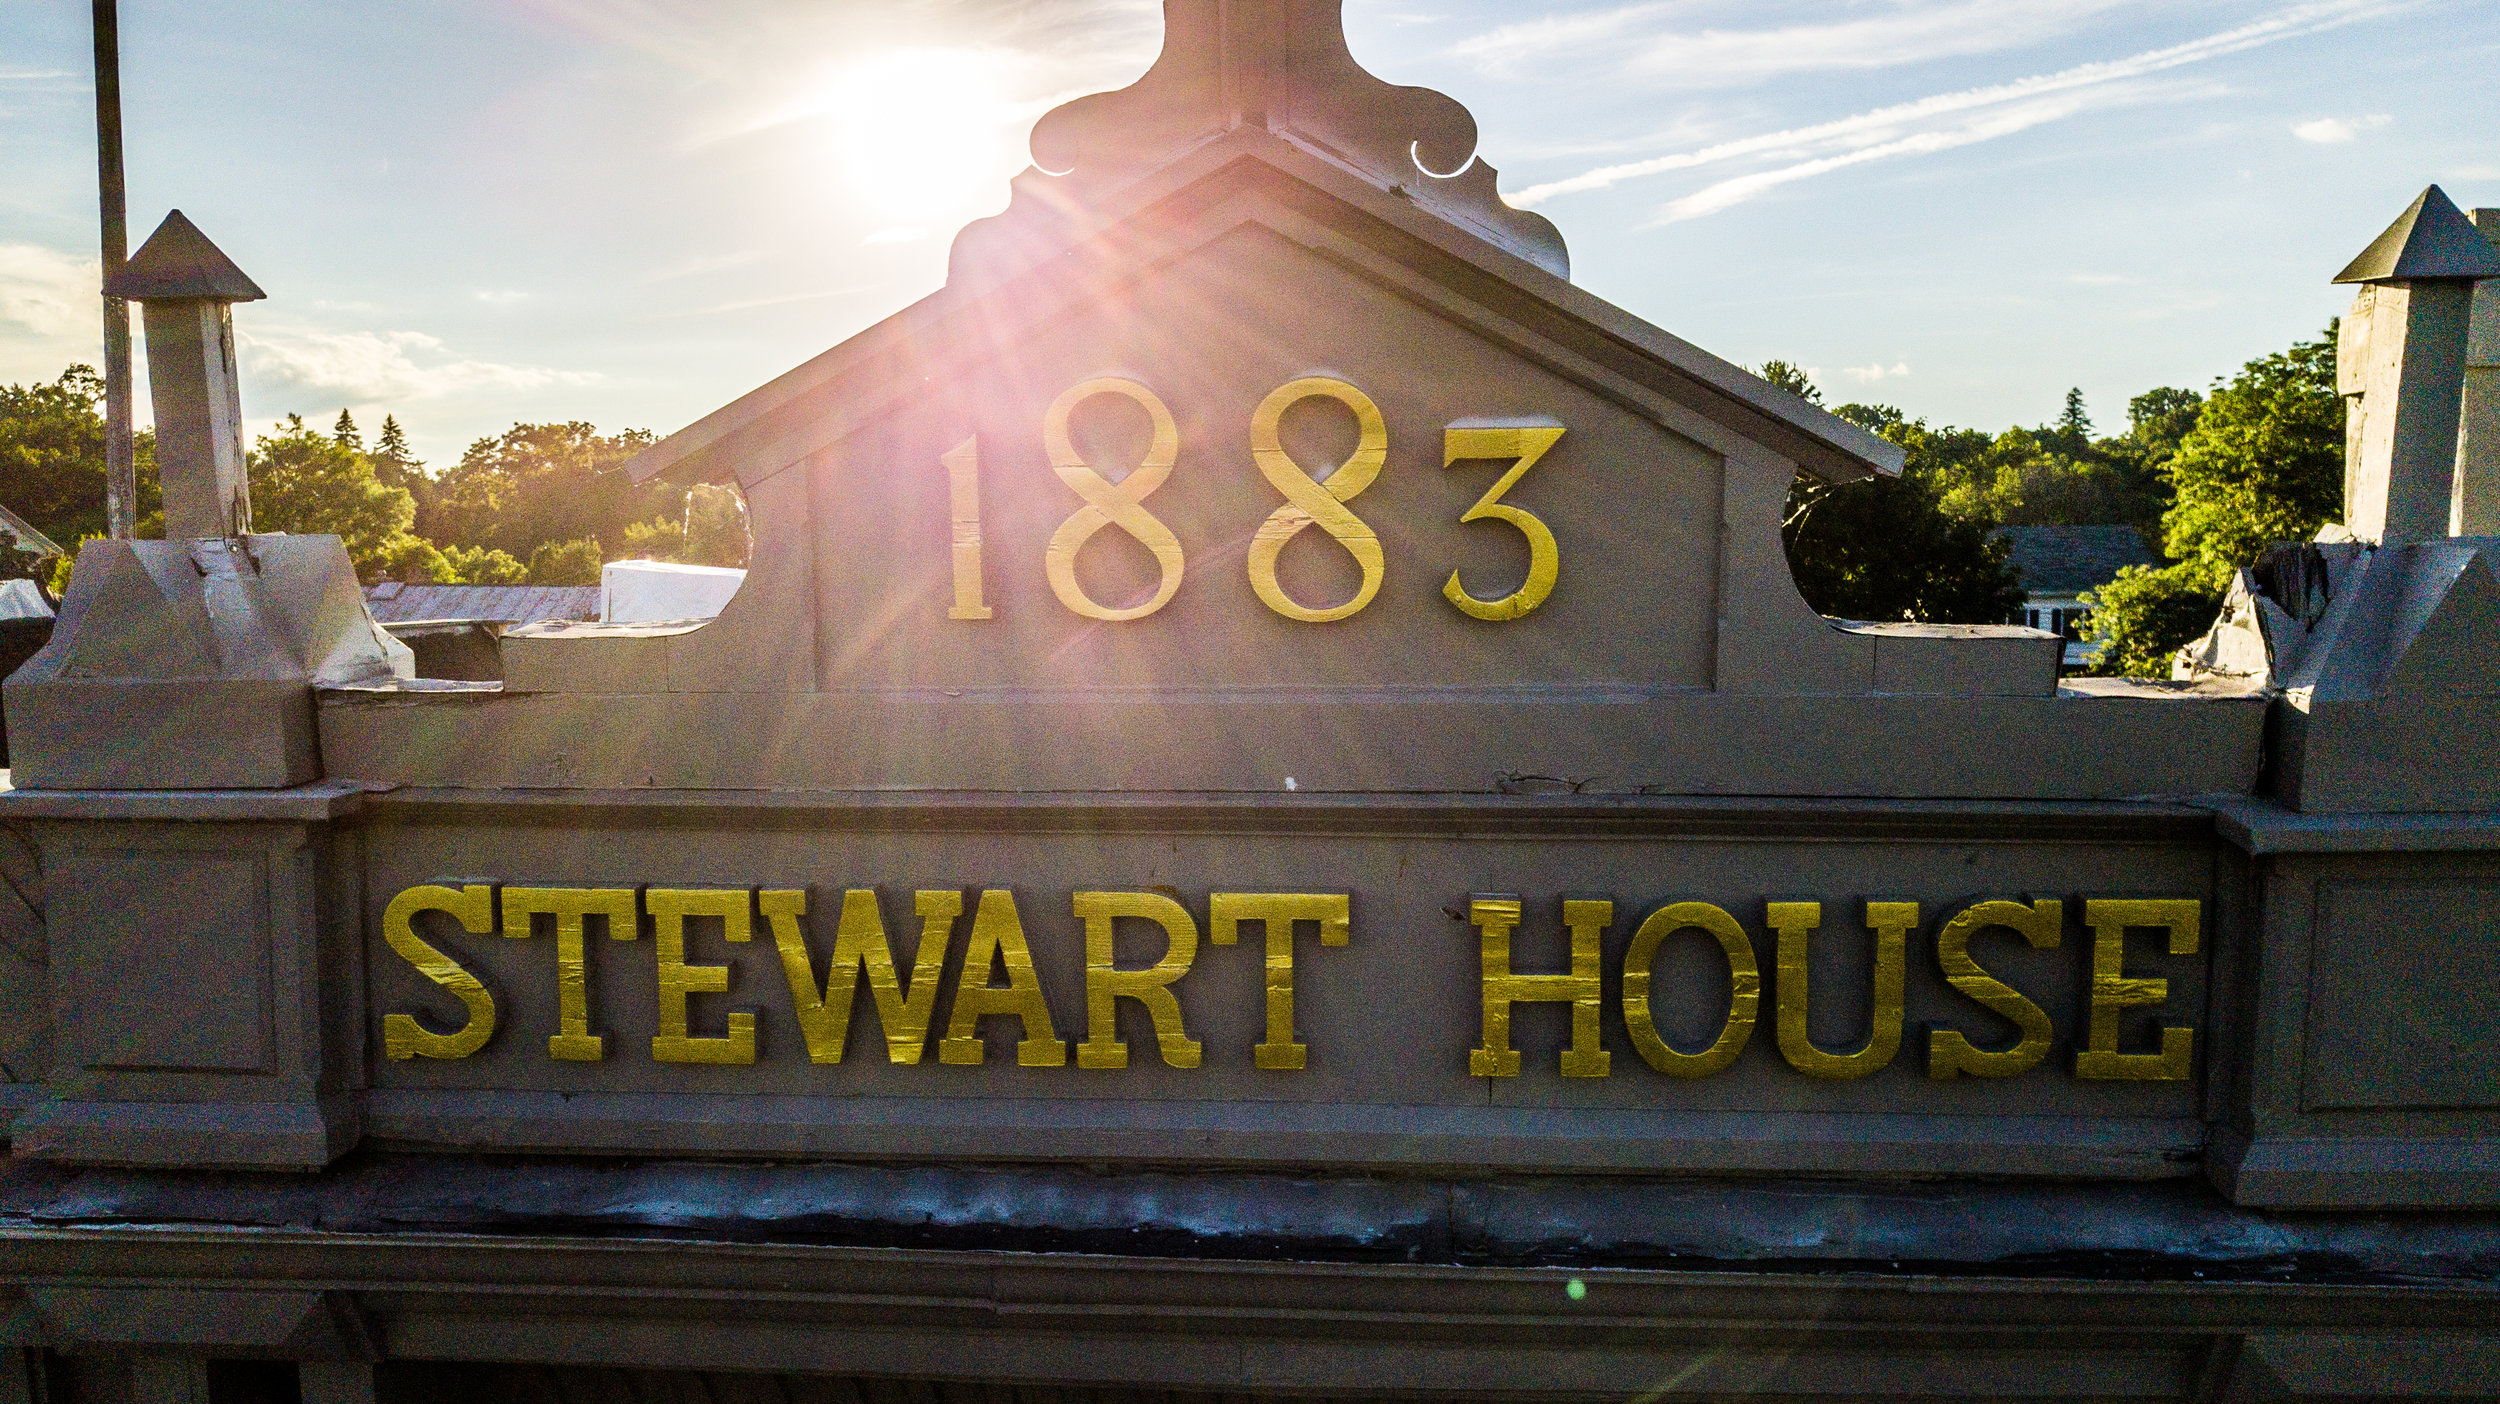 Table Hopping: Renovated Stewart House Reopening - By Steve Barnes!